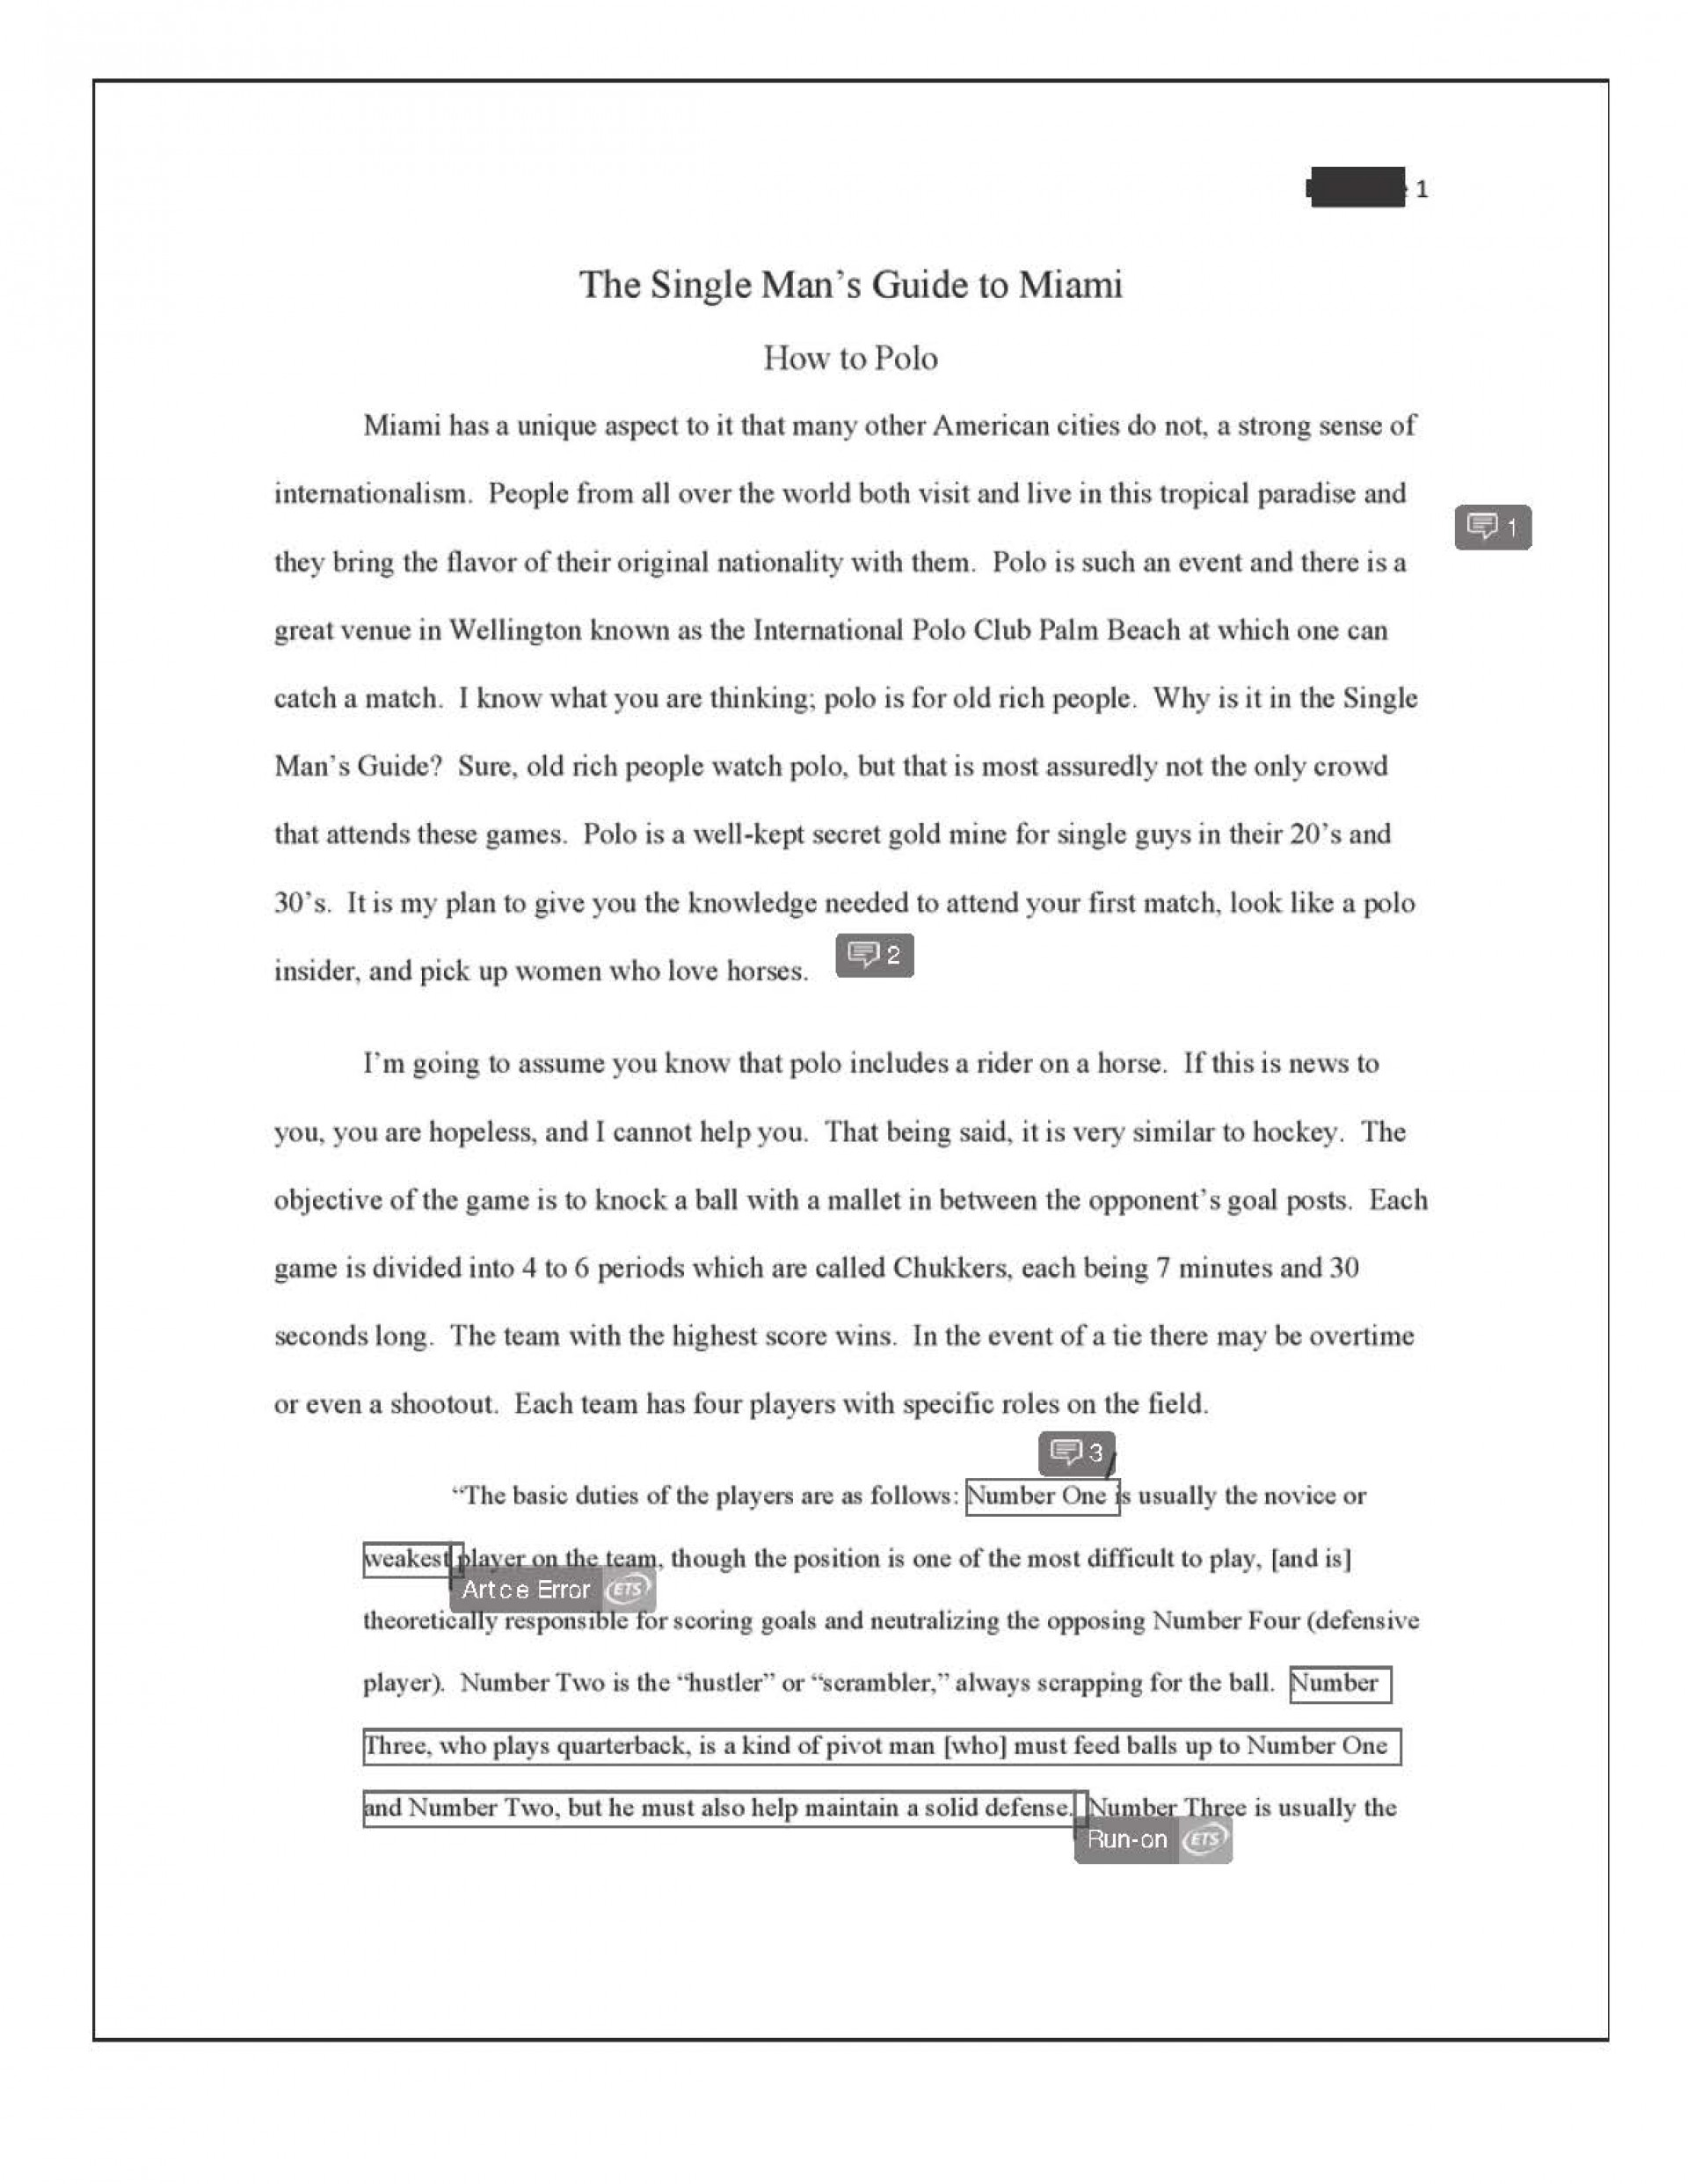 007 Informative Essay Kinds Of Writing Types Essays The Center In Hindi Final How To Polo Redacted P Pdf Task Slideshare Ppt Withs Wikipedia Dreaded Outline Template Topics For 5th Grade Rubric Fsa 1920